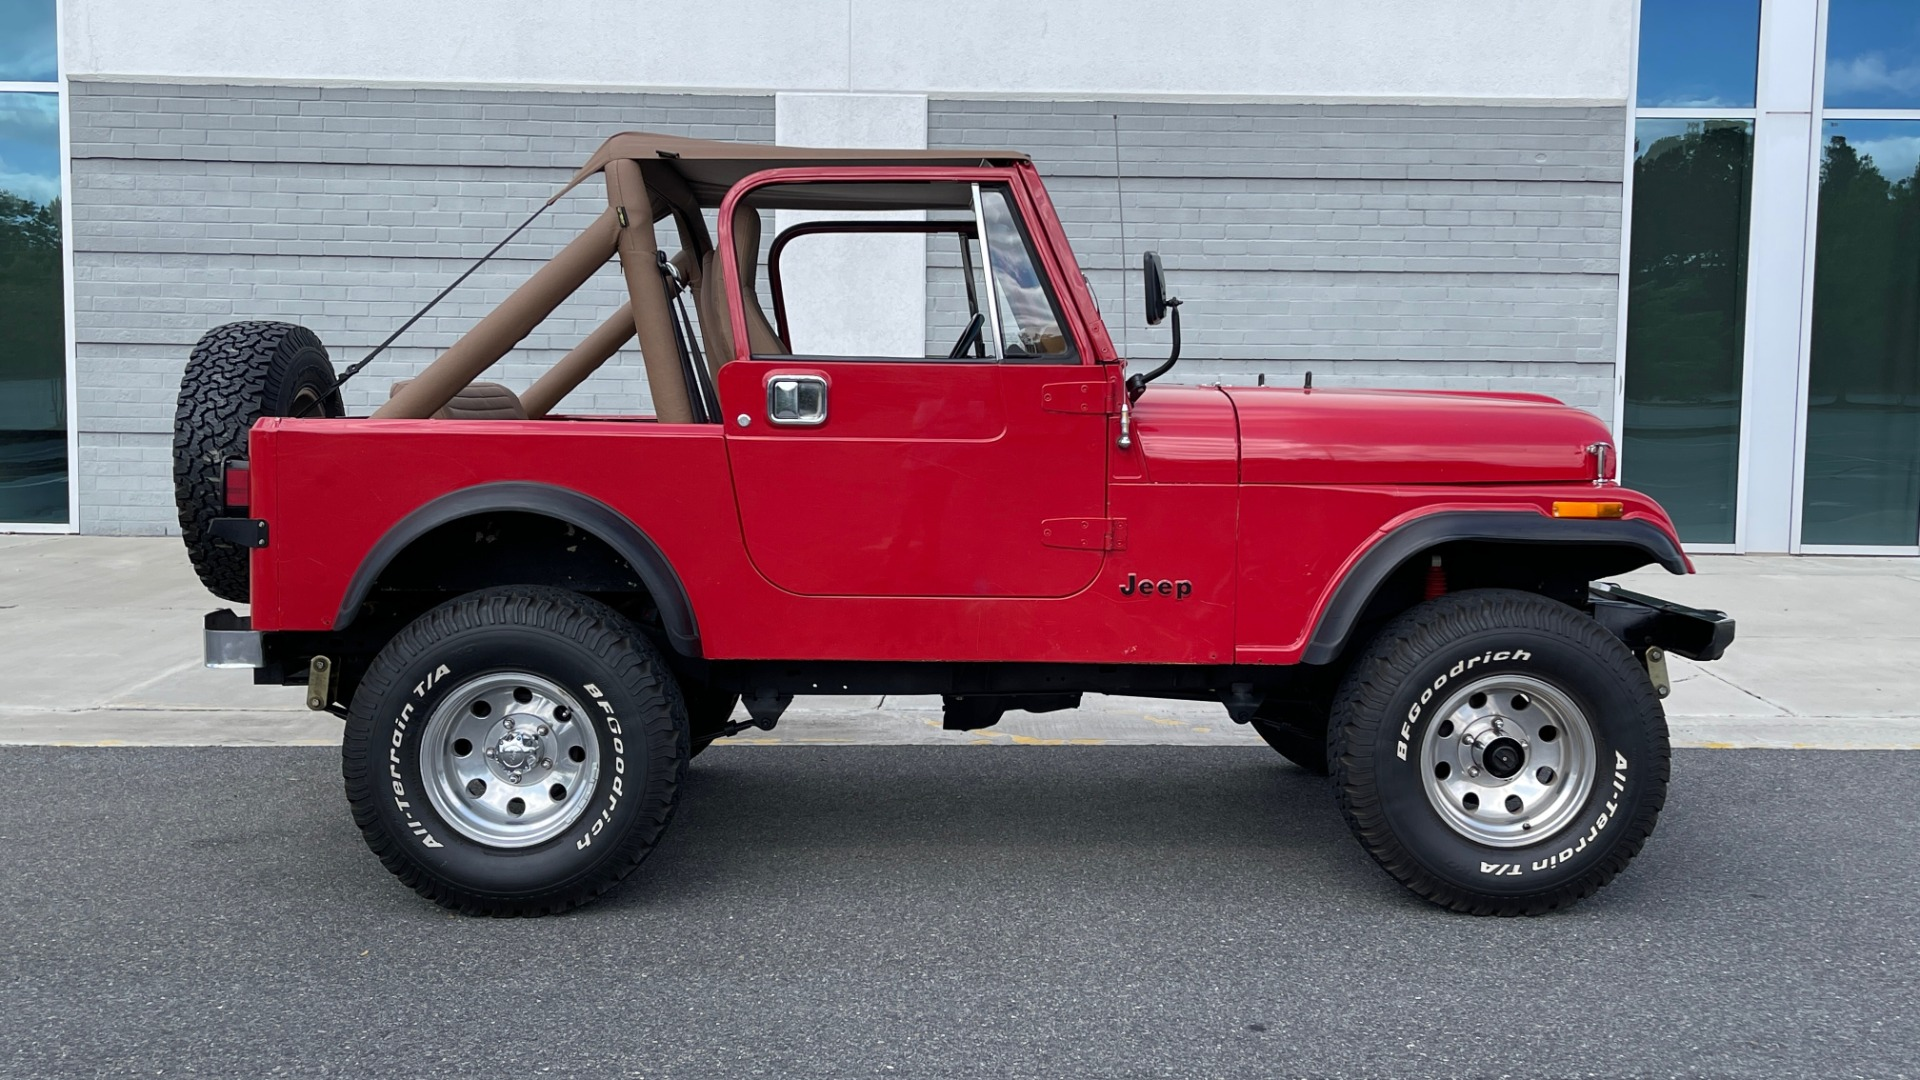 Used 1986 Jeep CJ-7 SOFT-TOP / 4X4 / 4.2L I6 / 5-SPEED MANUAL / HERTZ SPEAKERS / BFG TIRES for sale $20,999 at Formula Imports in Charlotte NC 28227 49